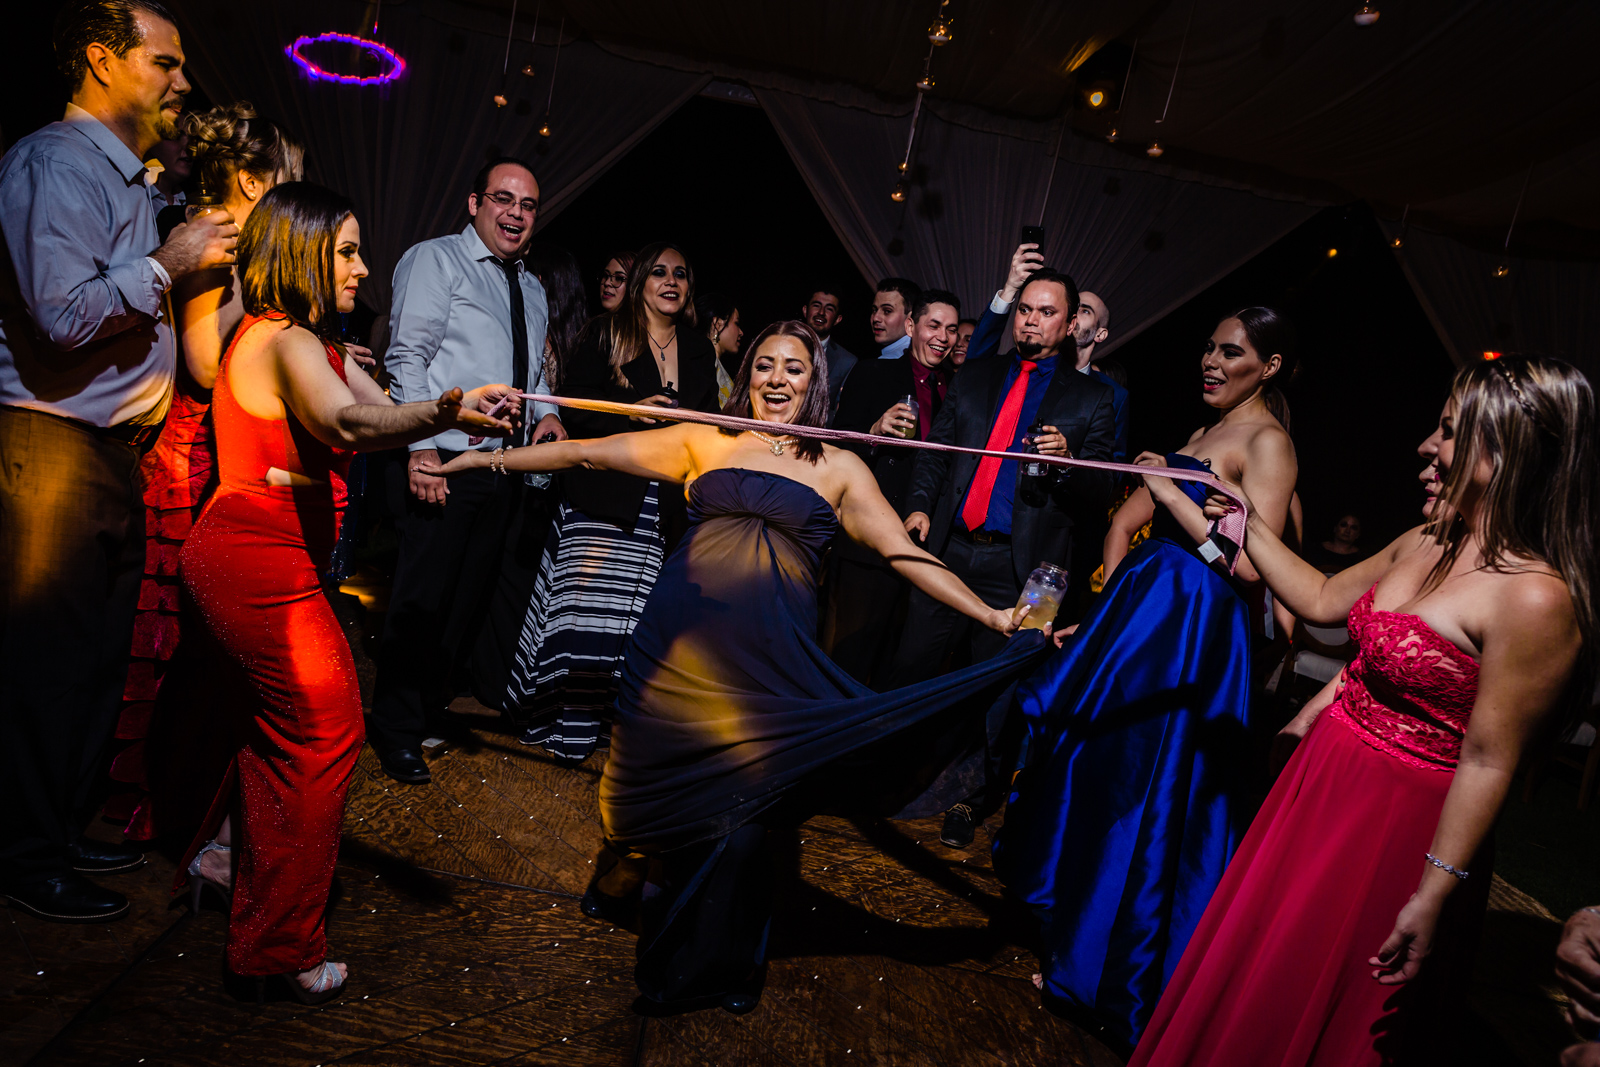 girls having fun on the dance floor play with the tie